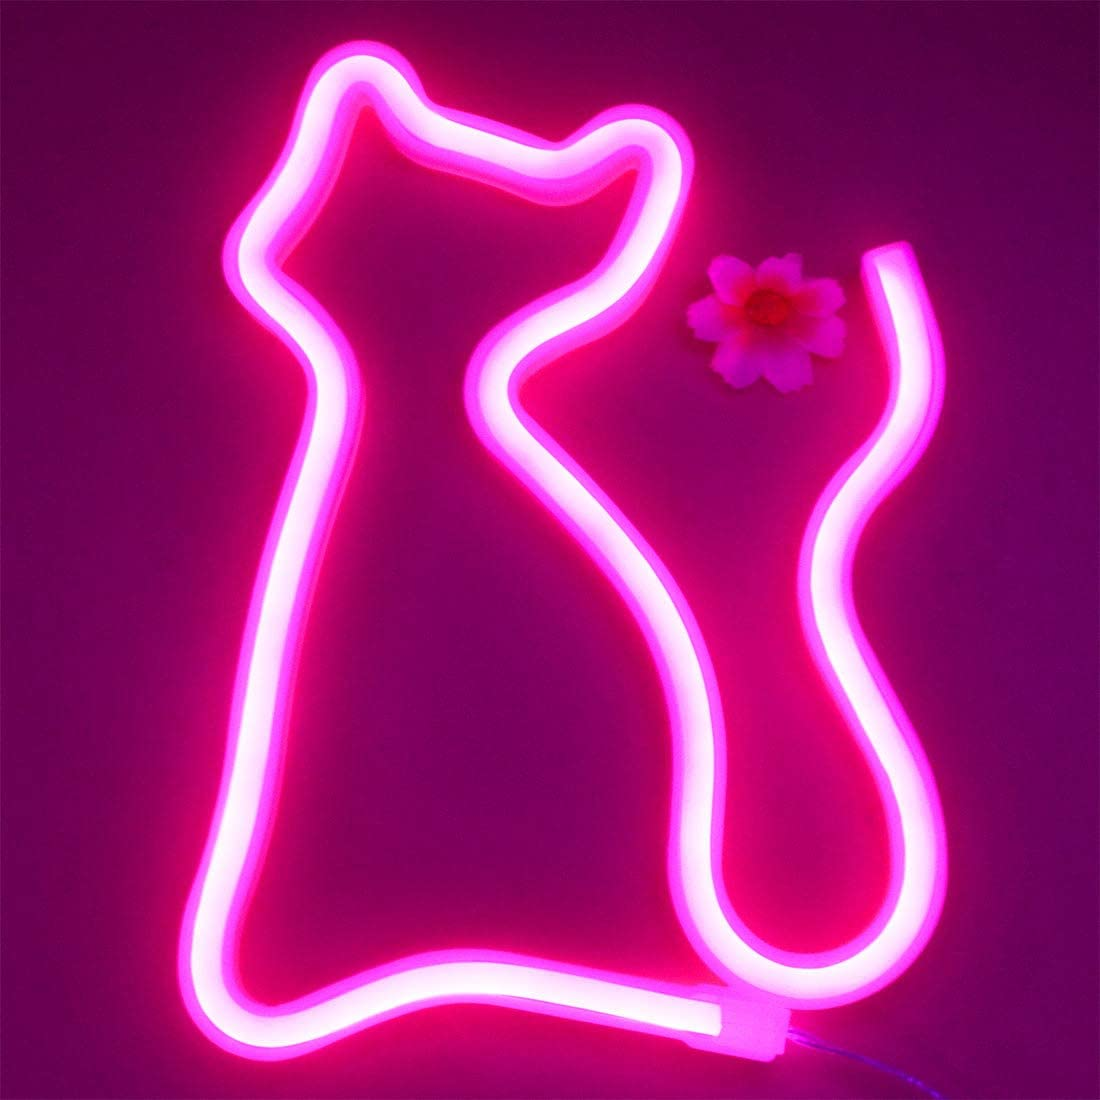 LED Cat Neon Signs Lights Wall Decor,Battery or USB Operated for Room,Wall Decor Table LED Neon Light Sign,Decorative for Bar,Christmas,Home Party, Wedding Birthday Kids or Girls Room(Pink Cat)